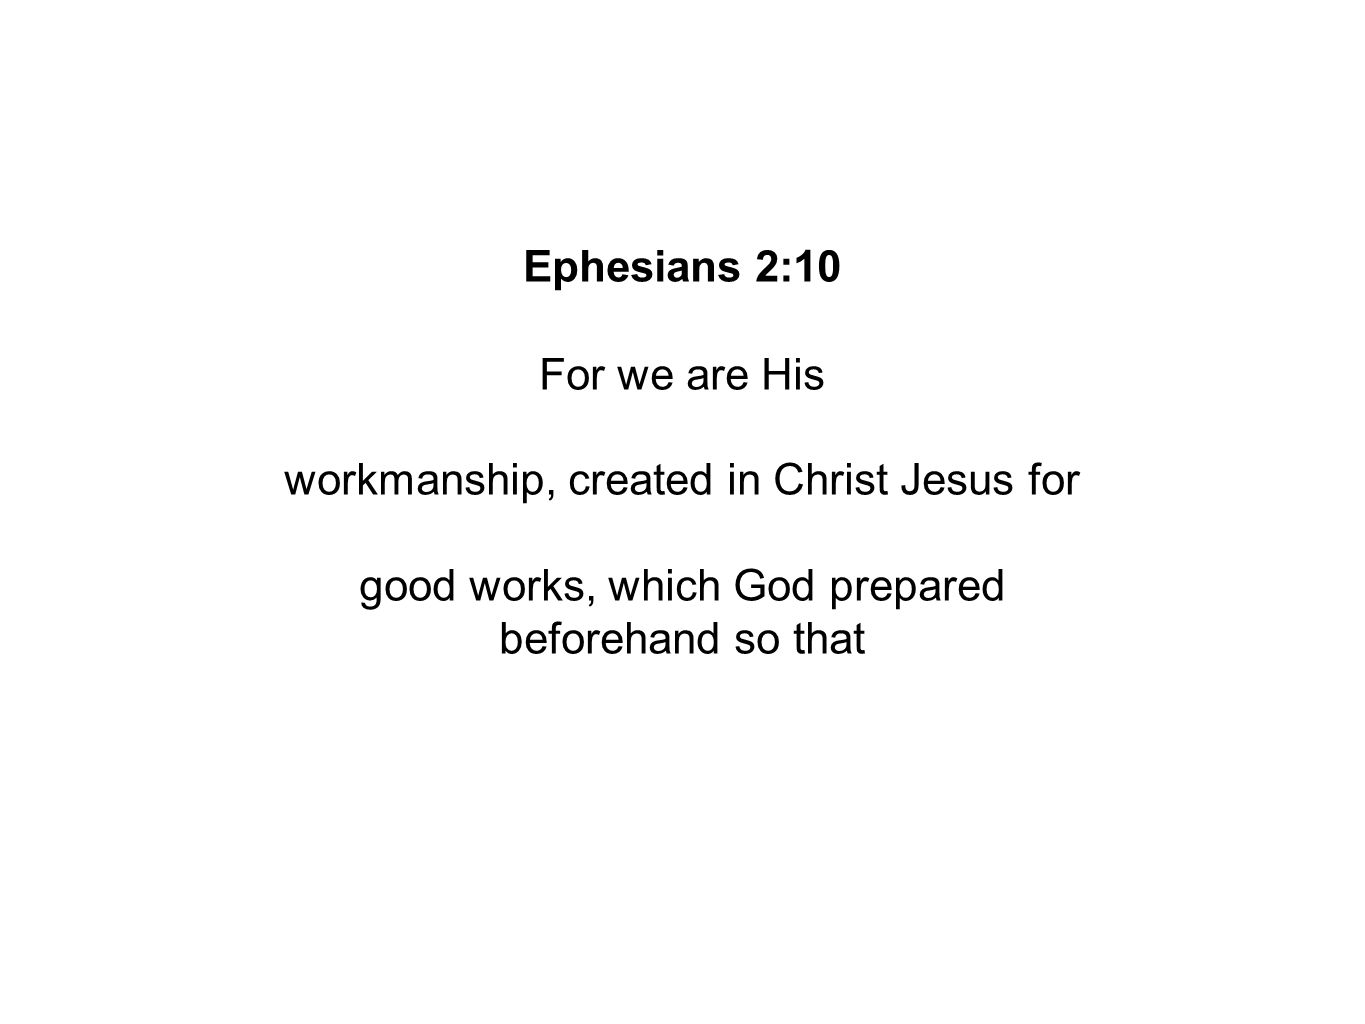 Ephesians 2:10 For we are His workmanship, created in Christ Jesus for good works, which God prepared beforehand so that